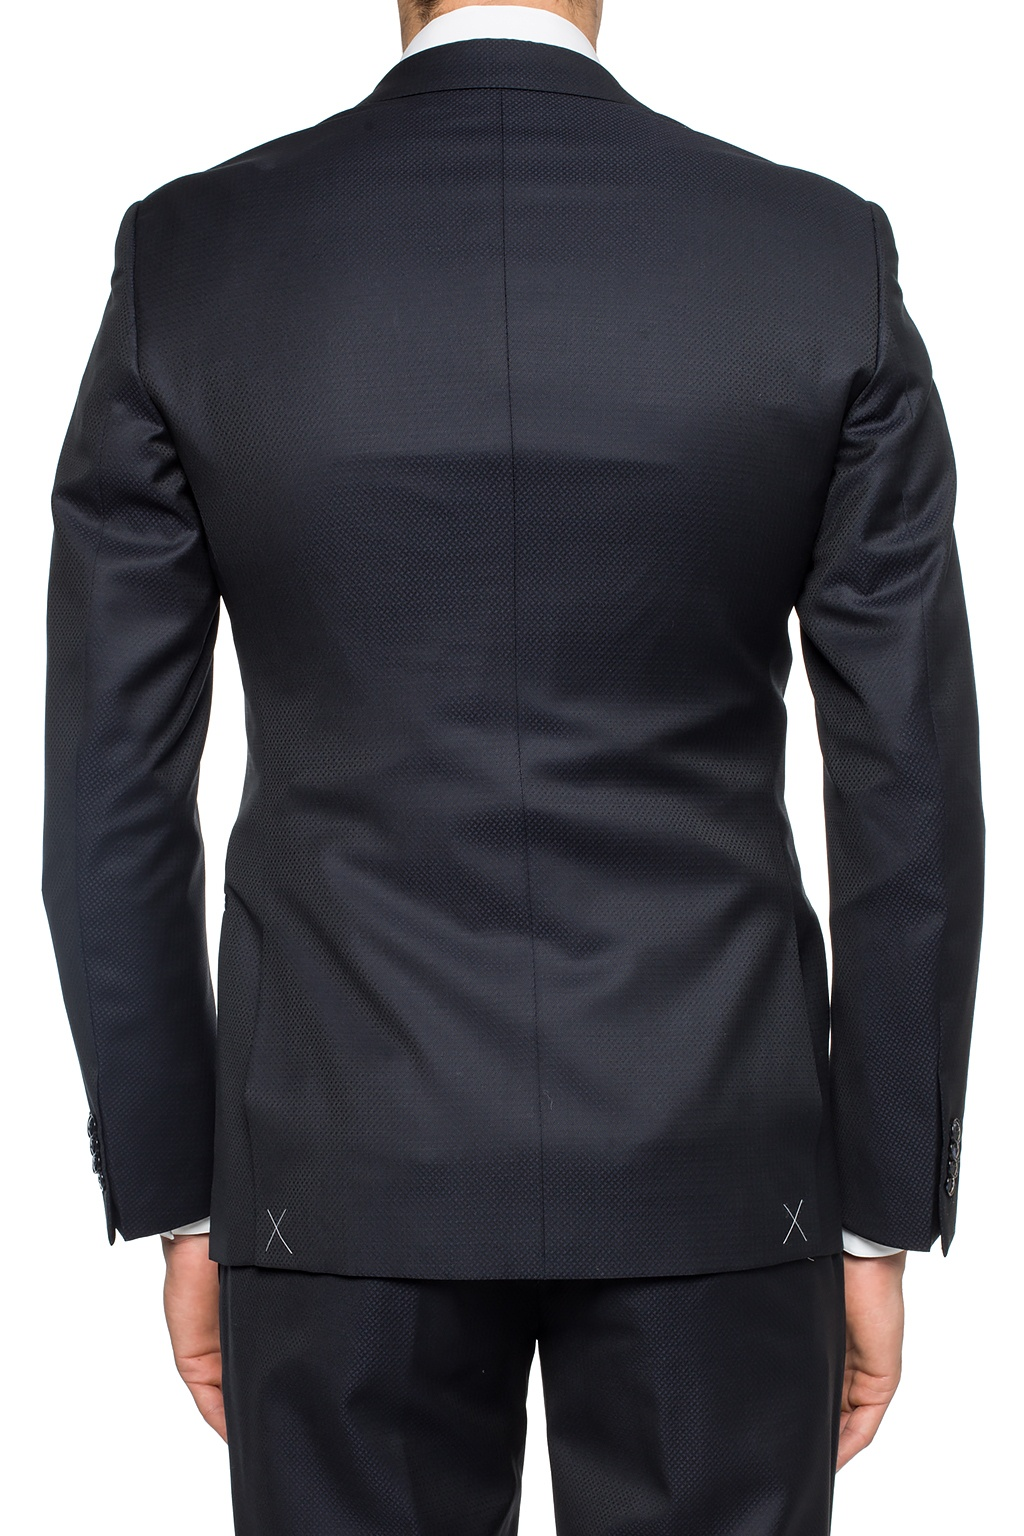 Giorgio Armani Single-breasted suit